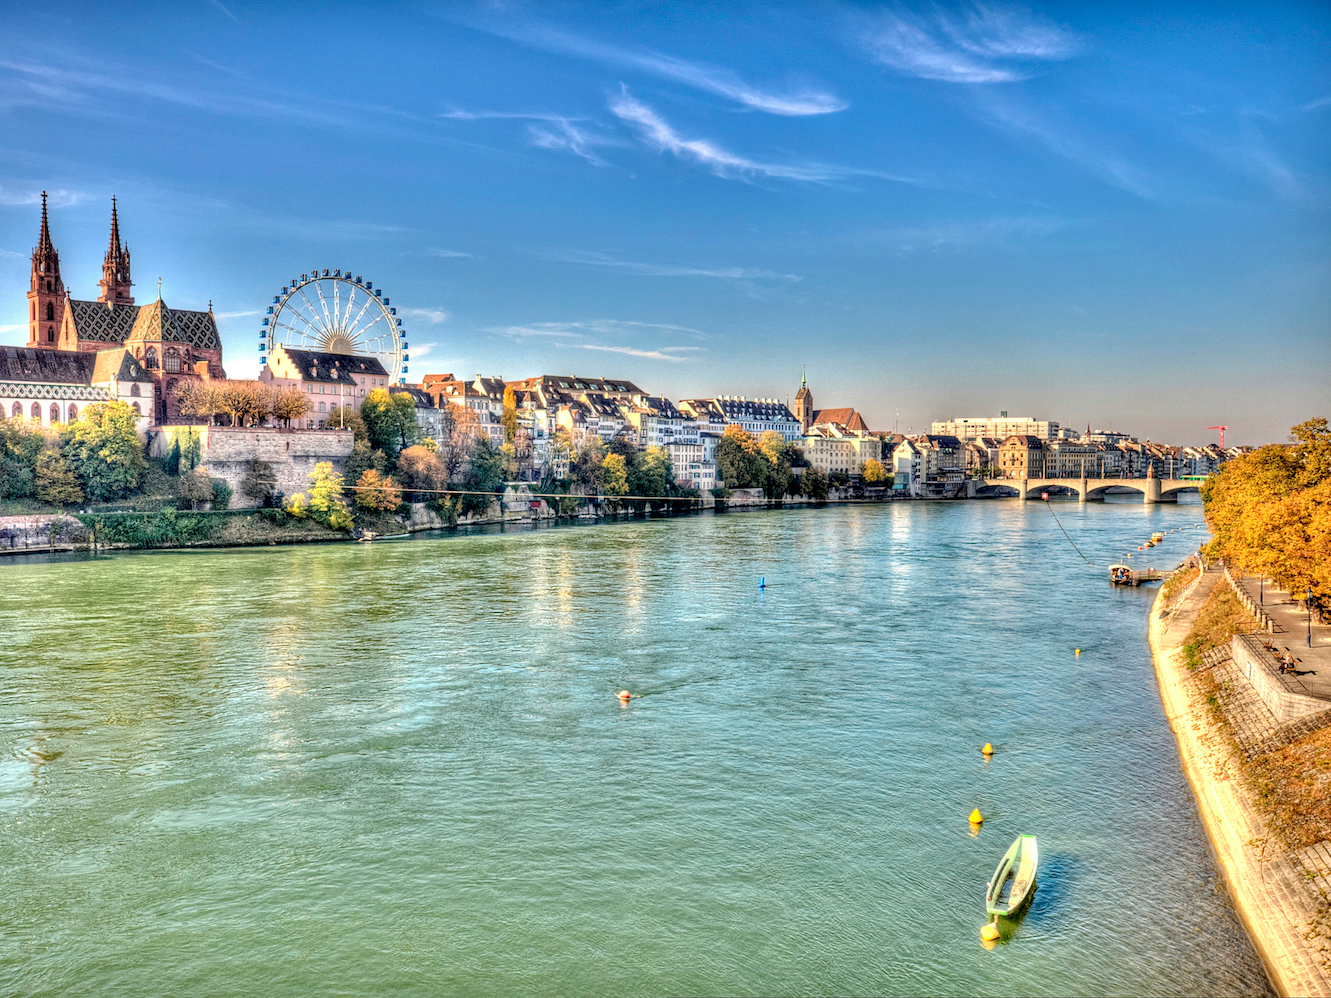 The city of Basel borders the Rhine River. It's known for its red sandstone Gothic cathedral, which dates back to the 12th century and houses the tomb of the famous Dutch scholar, Erasmus.